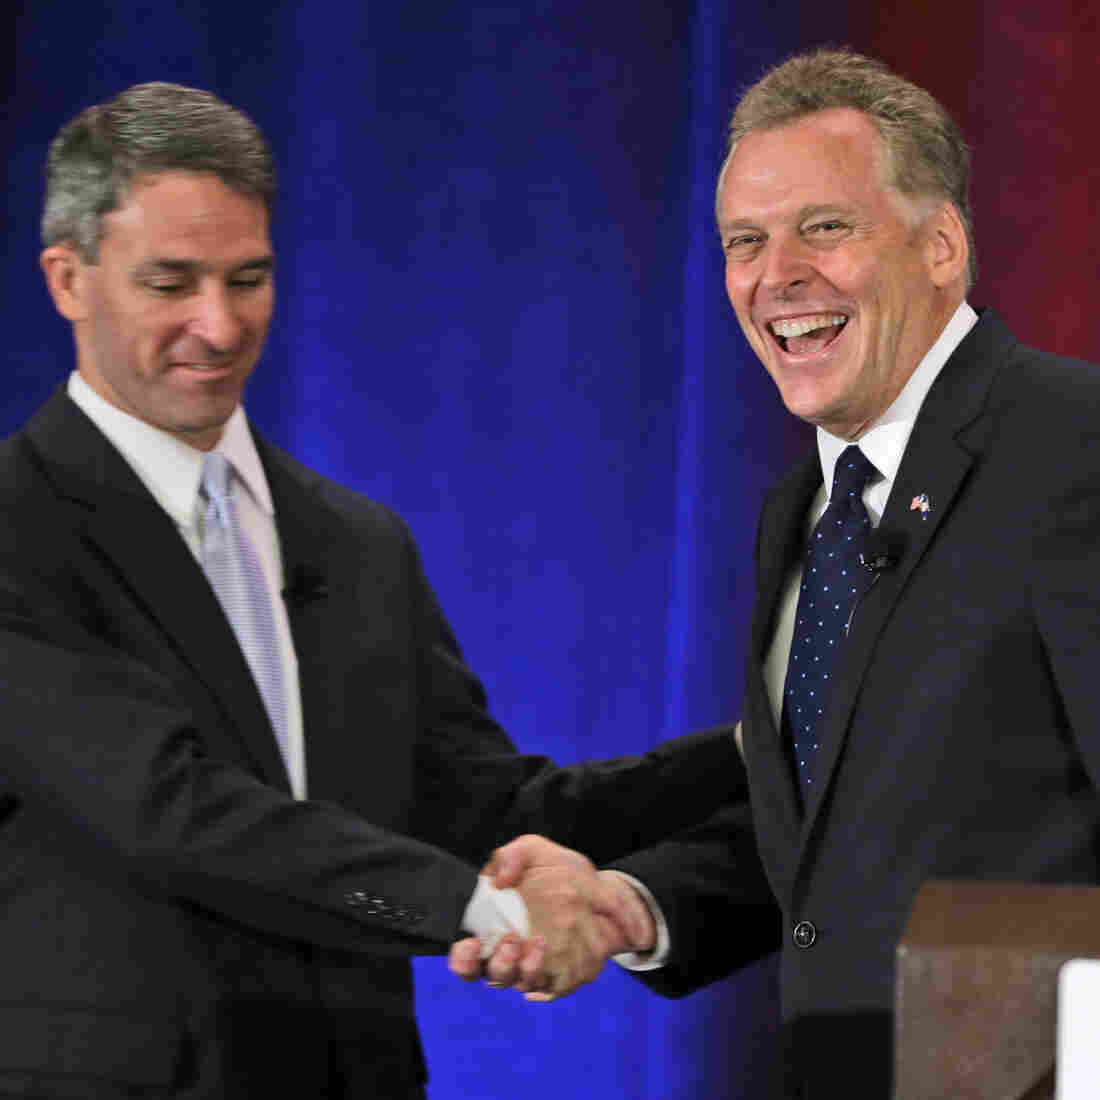 Gender Gap Doesn't Budge In Virginia Governor's Race